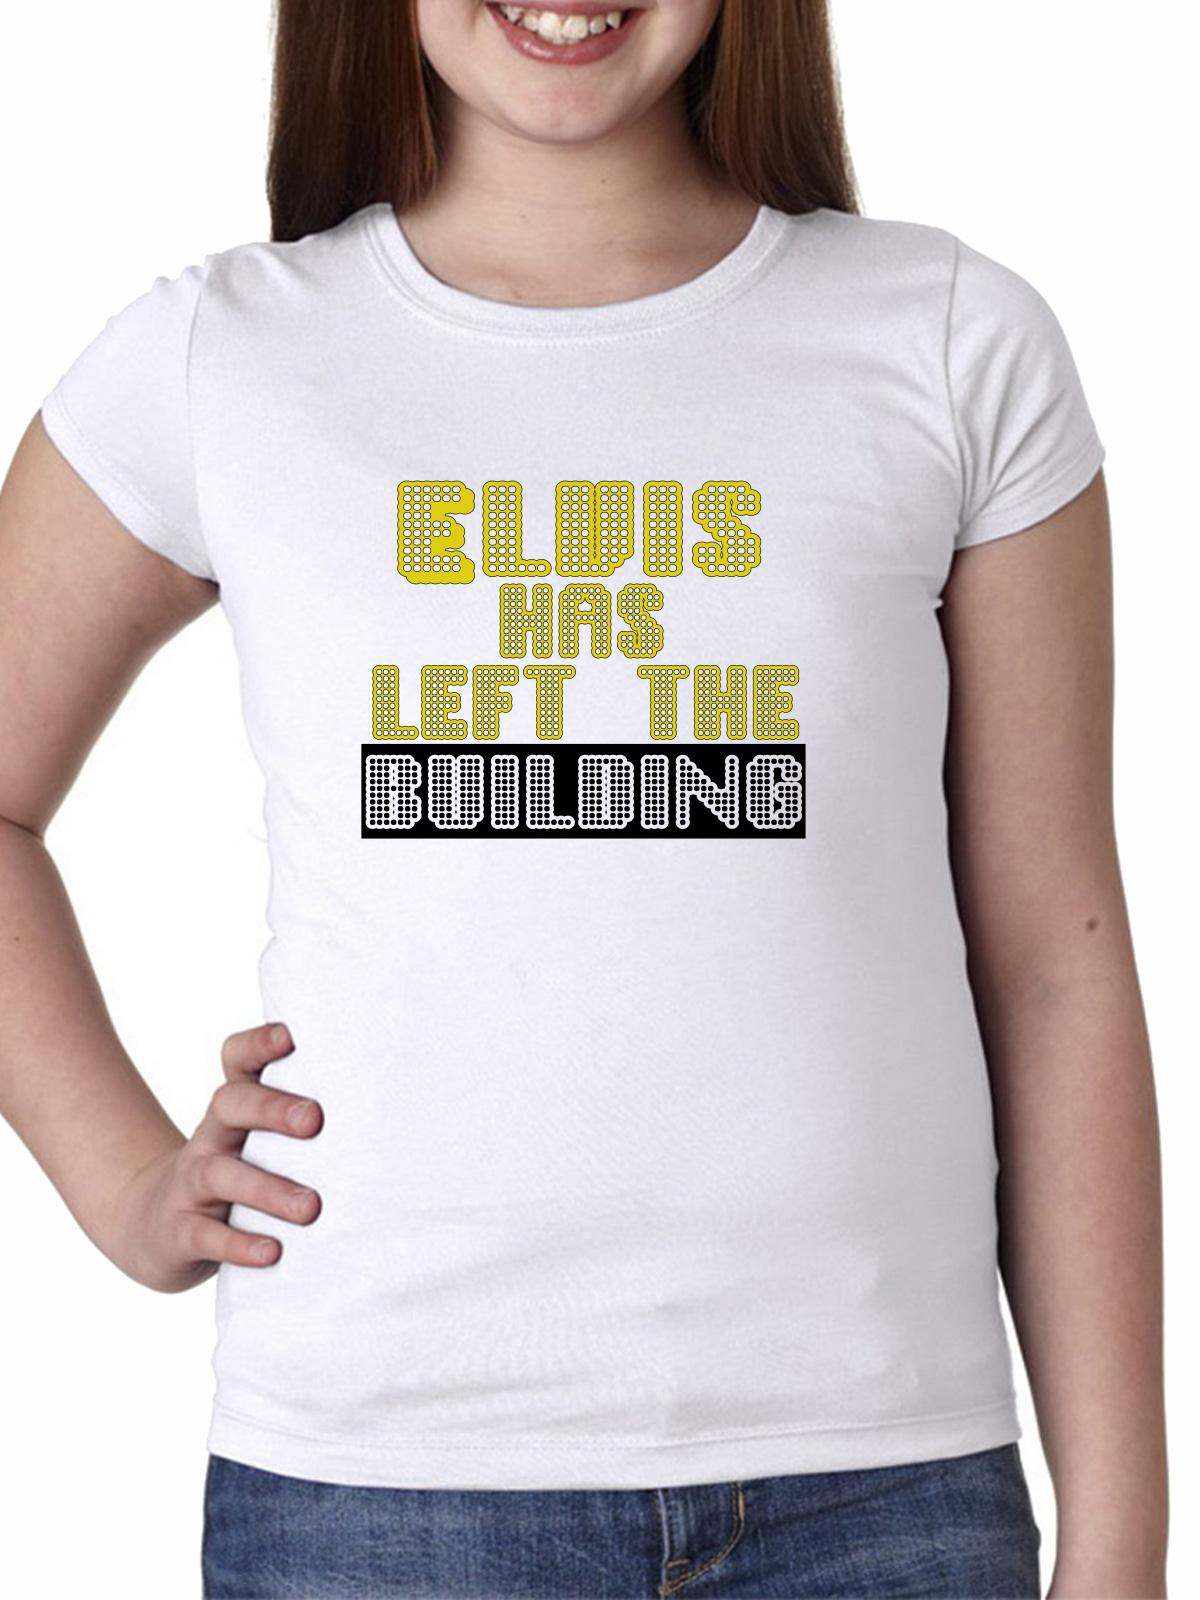 Elvis Has Left the Building - Funny Saying Girl's Cotton Youth T-Shirt